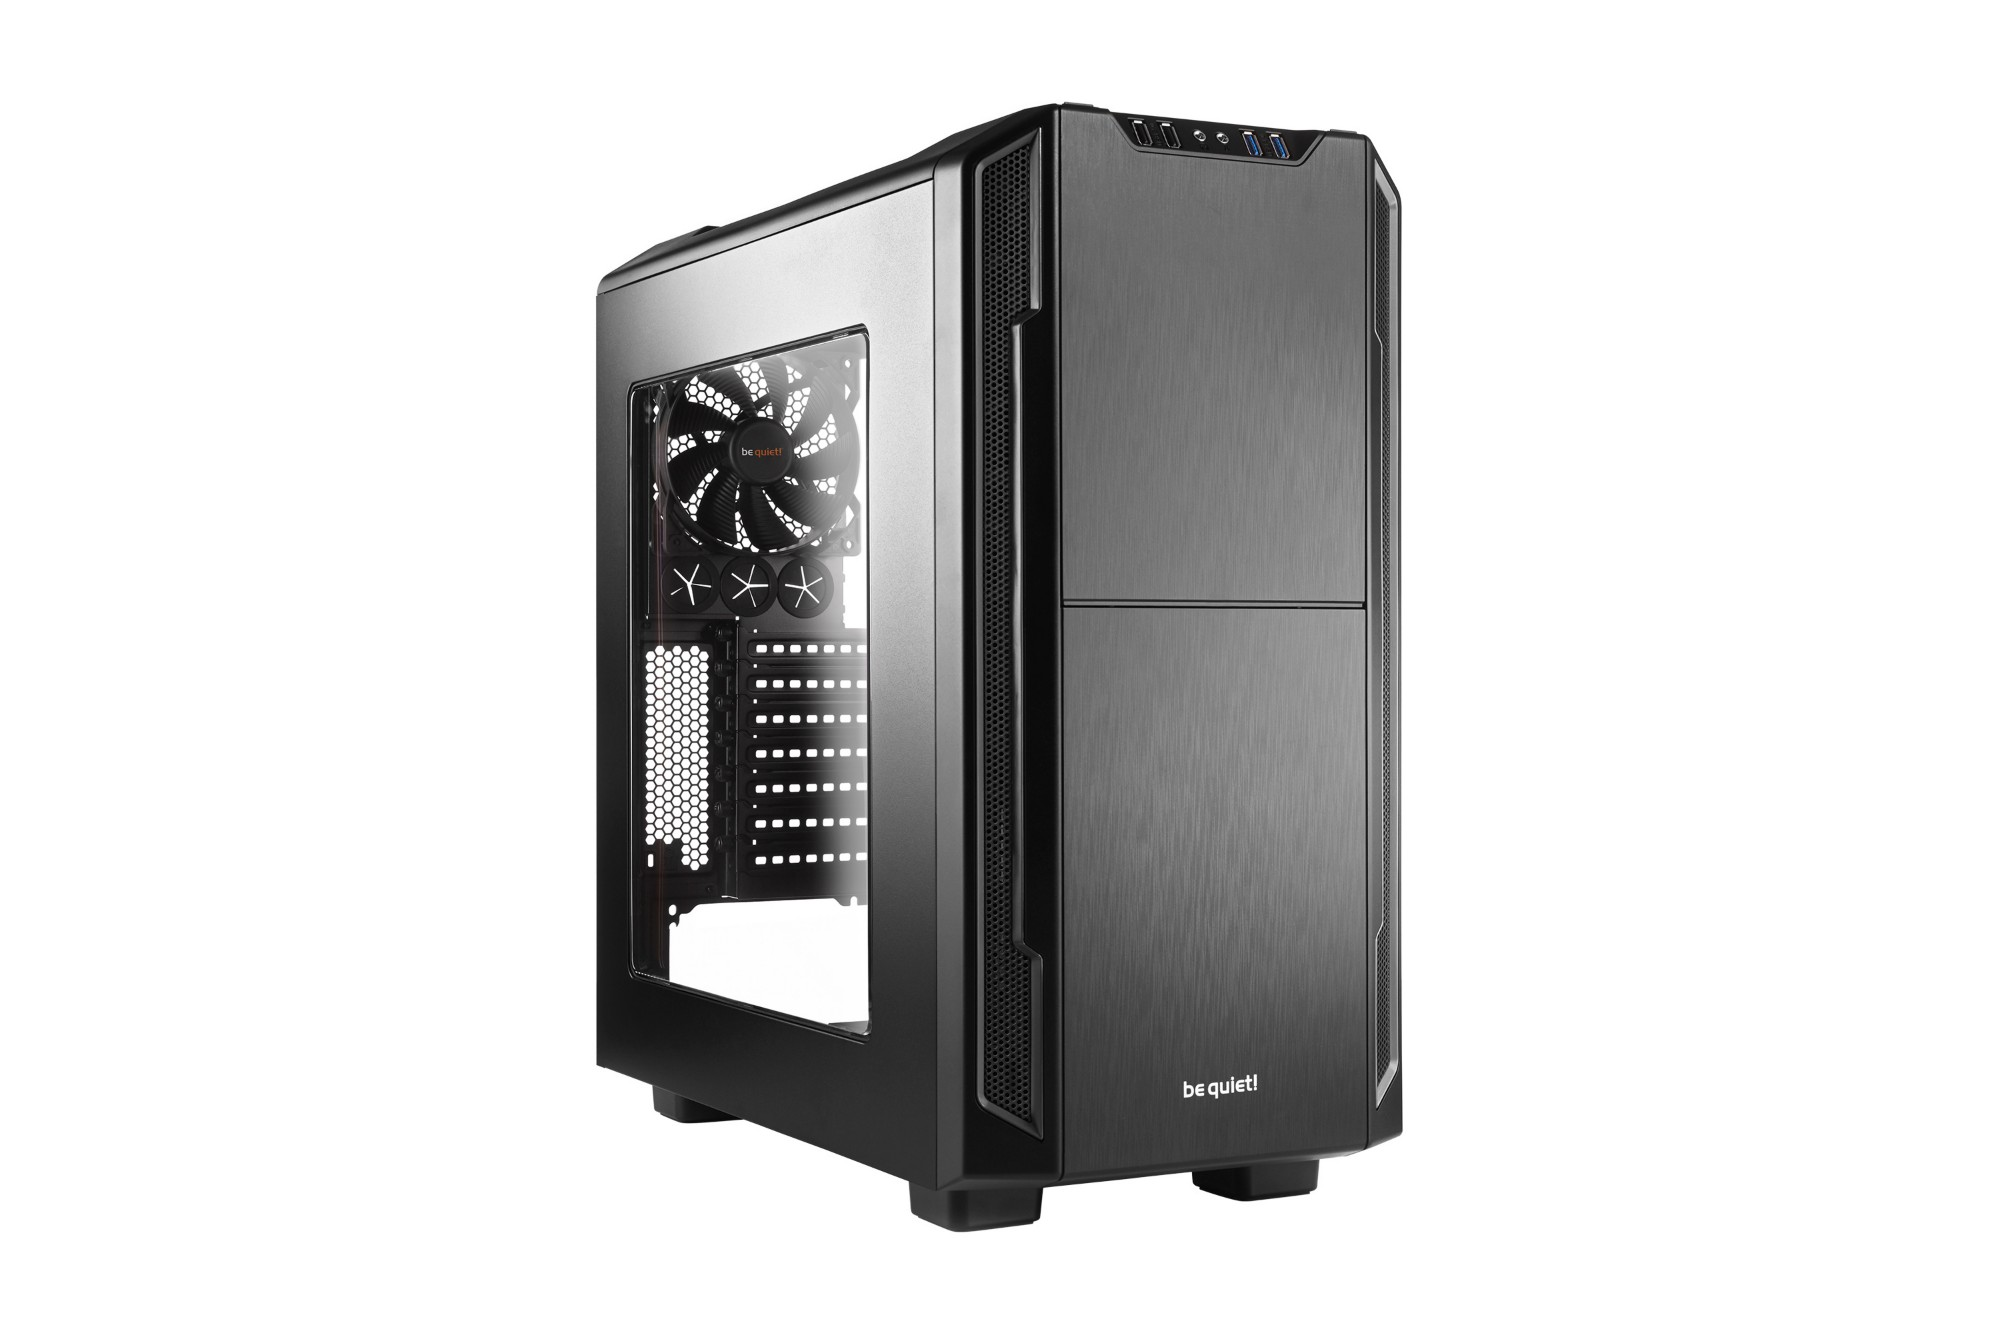 BE QUIET! BGW06 SILENT BASE 600 DESKTOP BLACK COMPUTER CASE